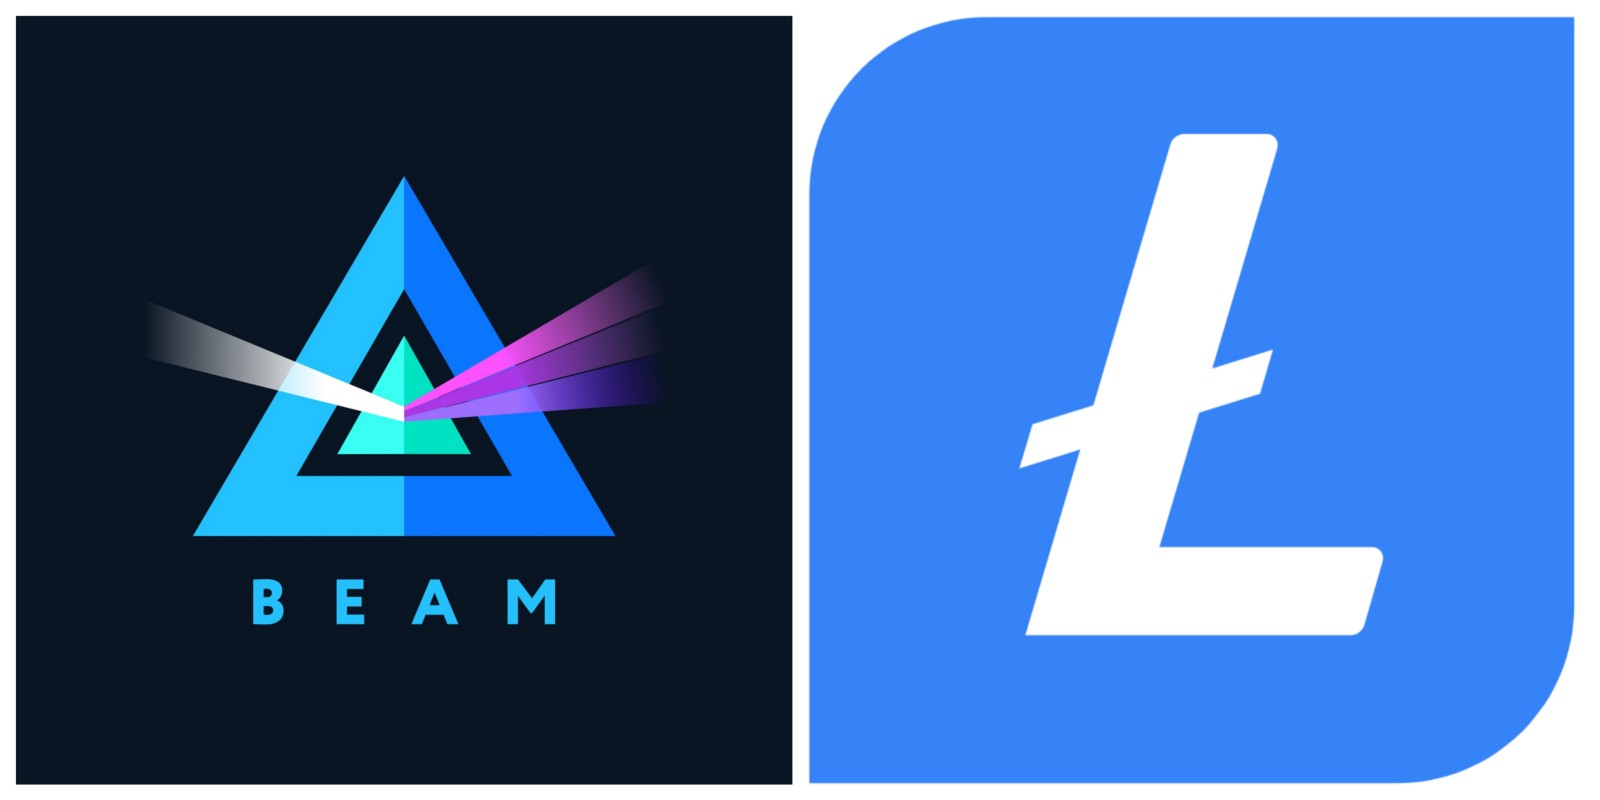 Litecoin Foundation and Beam Cooperation Announcement